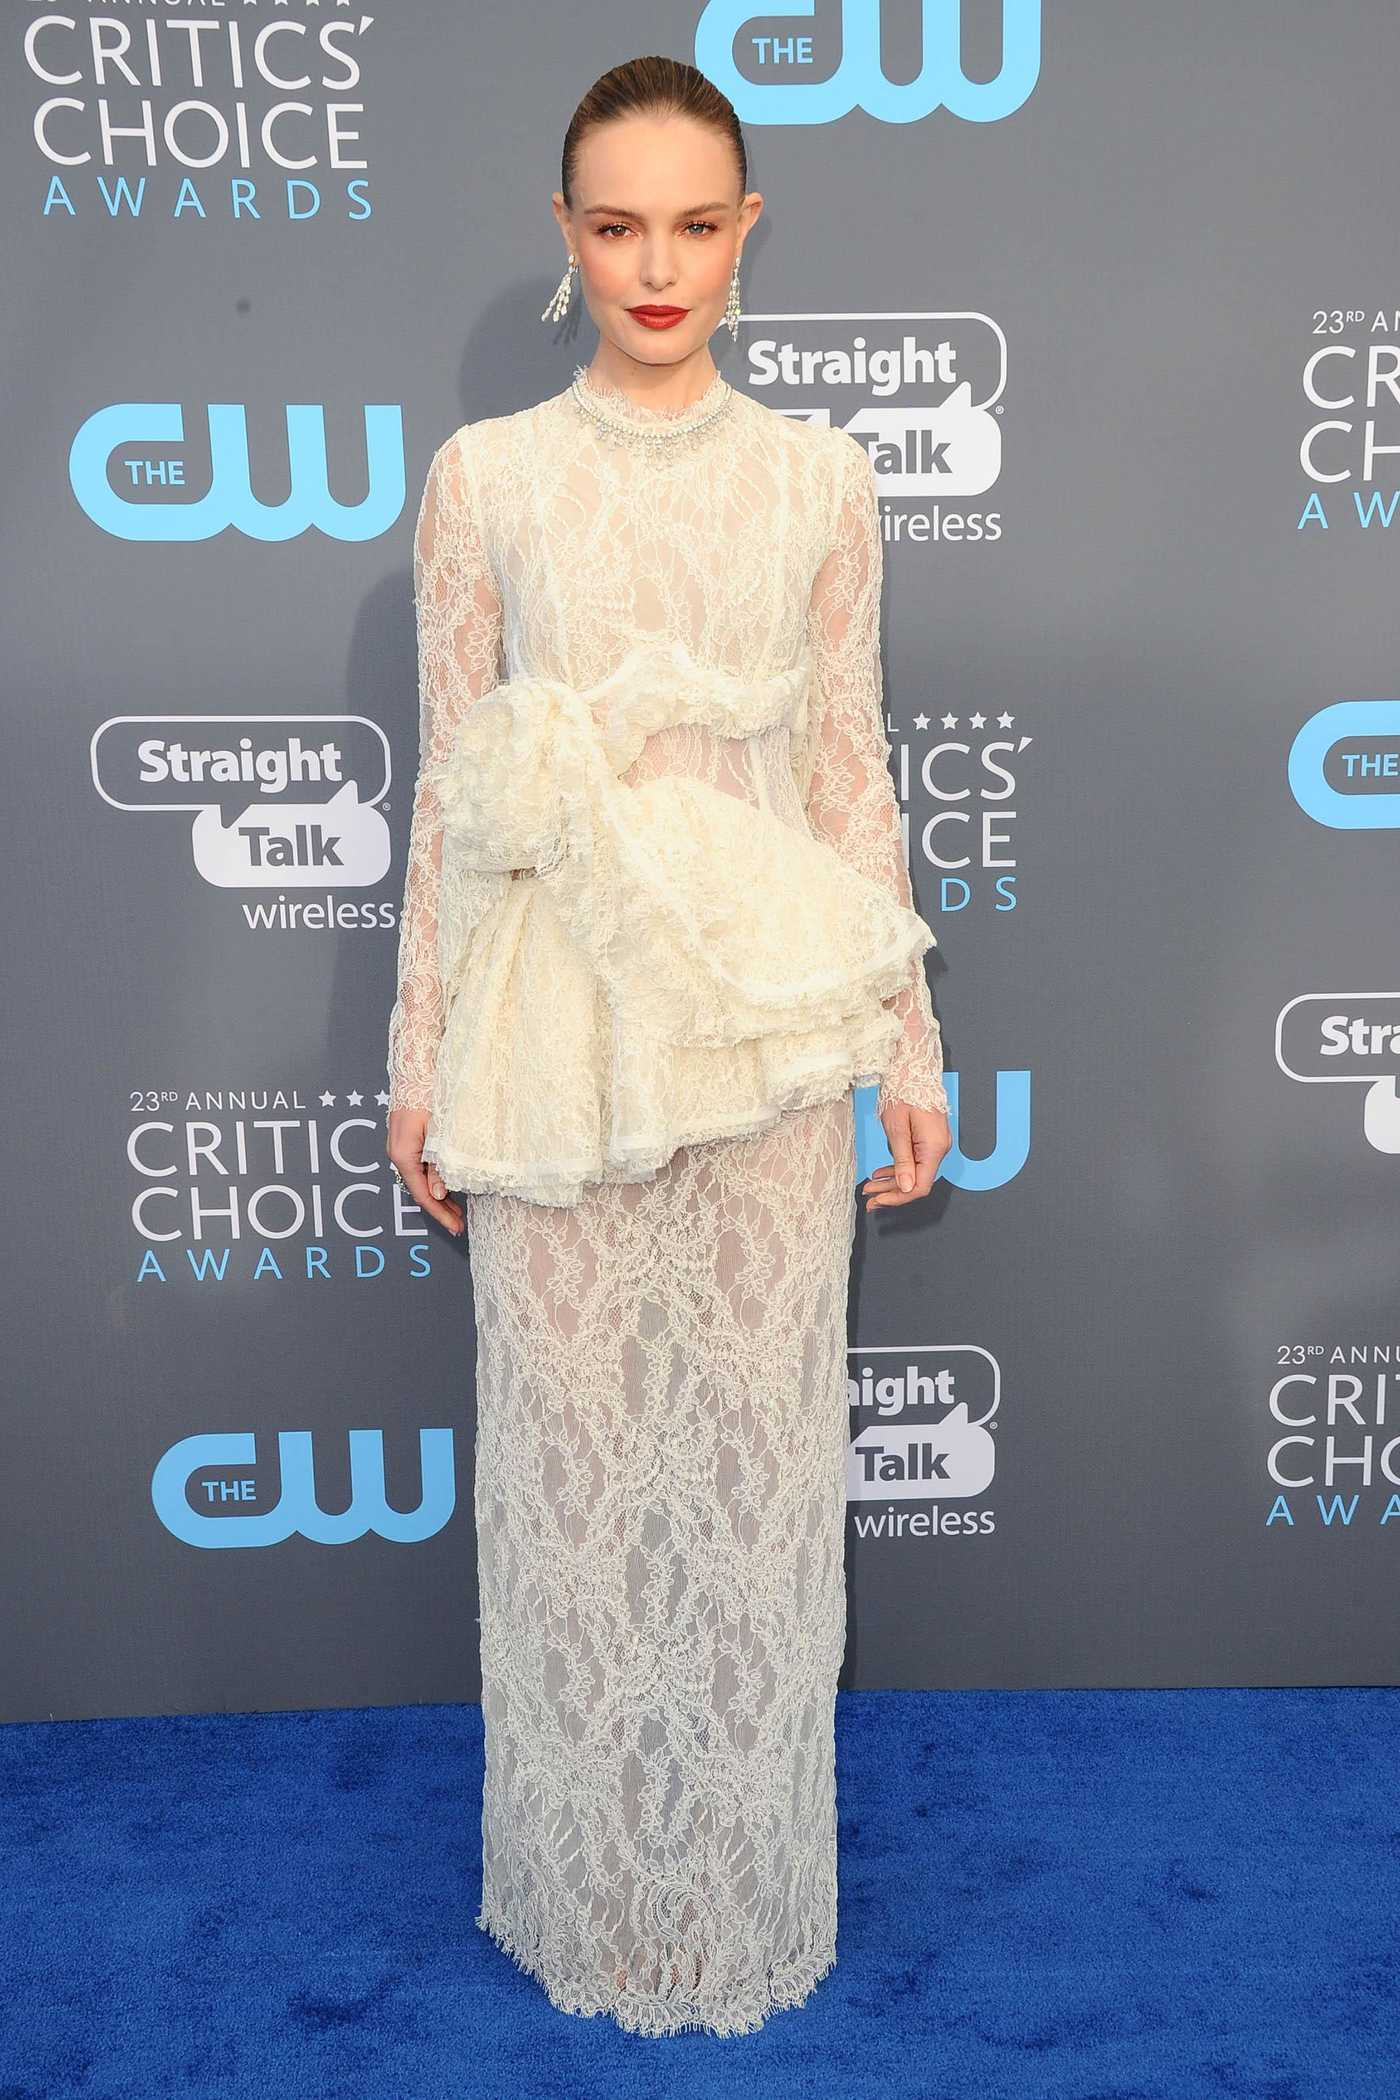 Kate Bosworth at the 23rd Annual Critics' Choice Awards in Santa Monica 01/11/2018